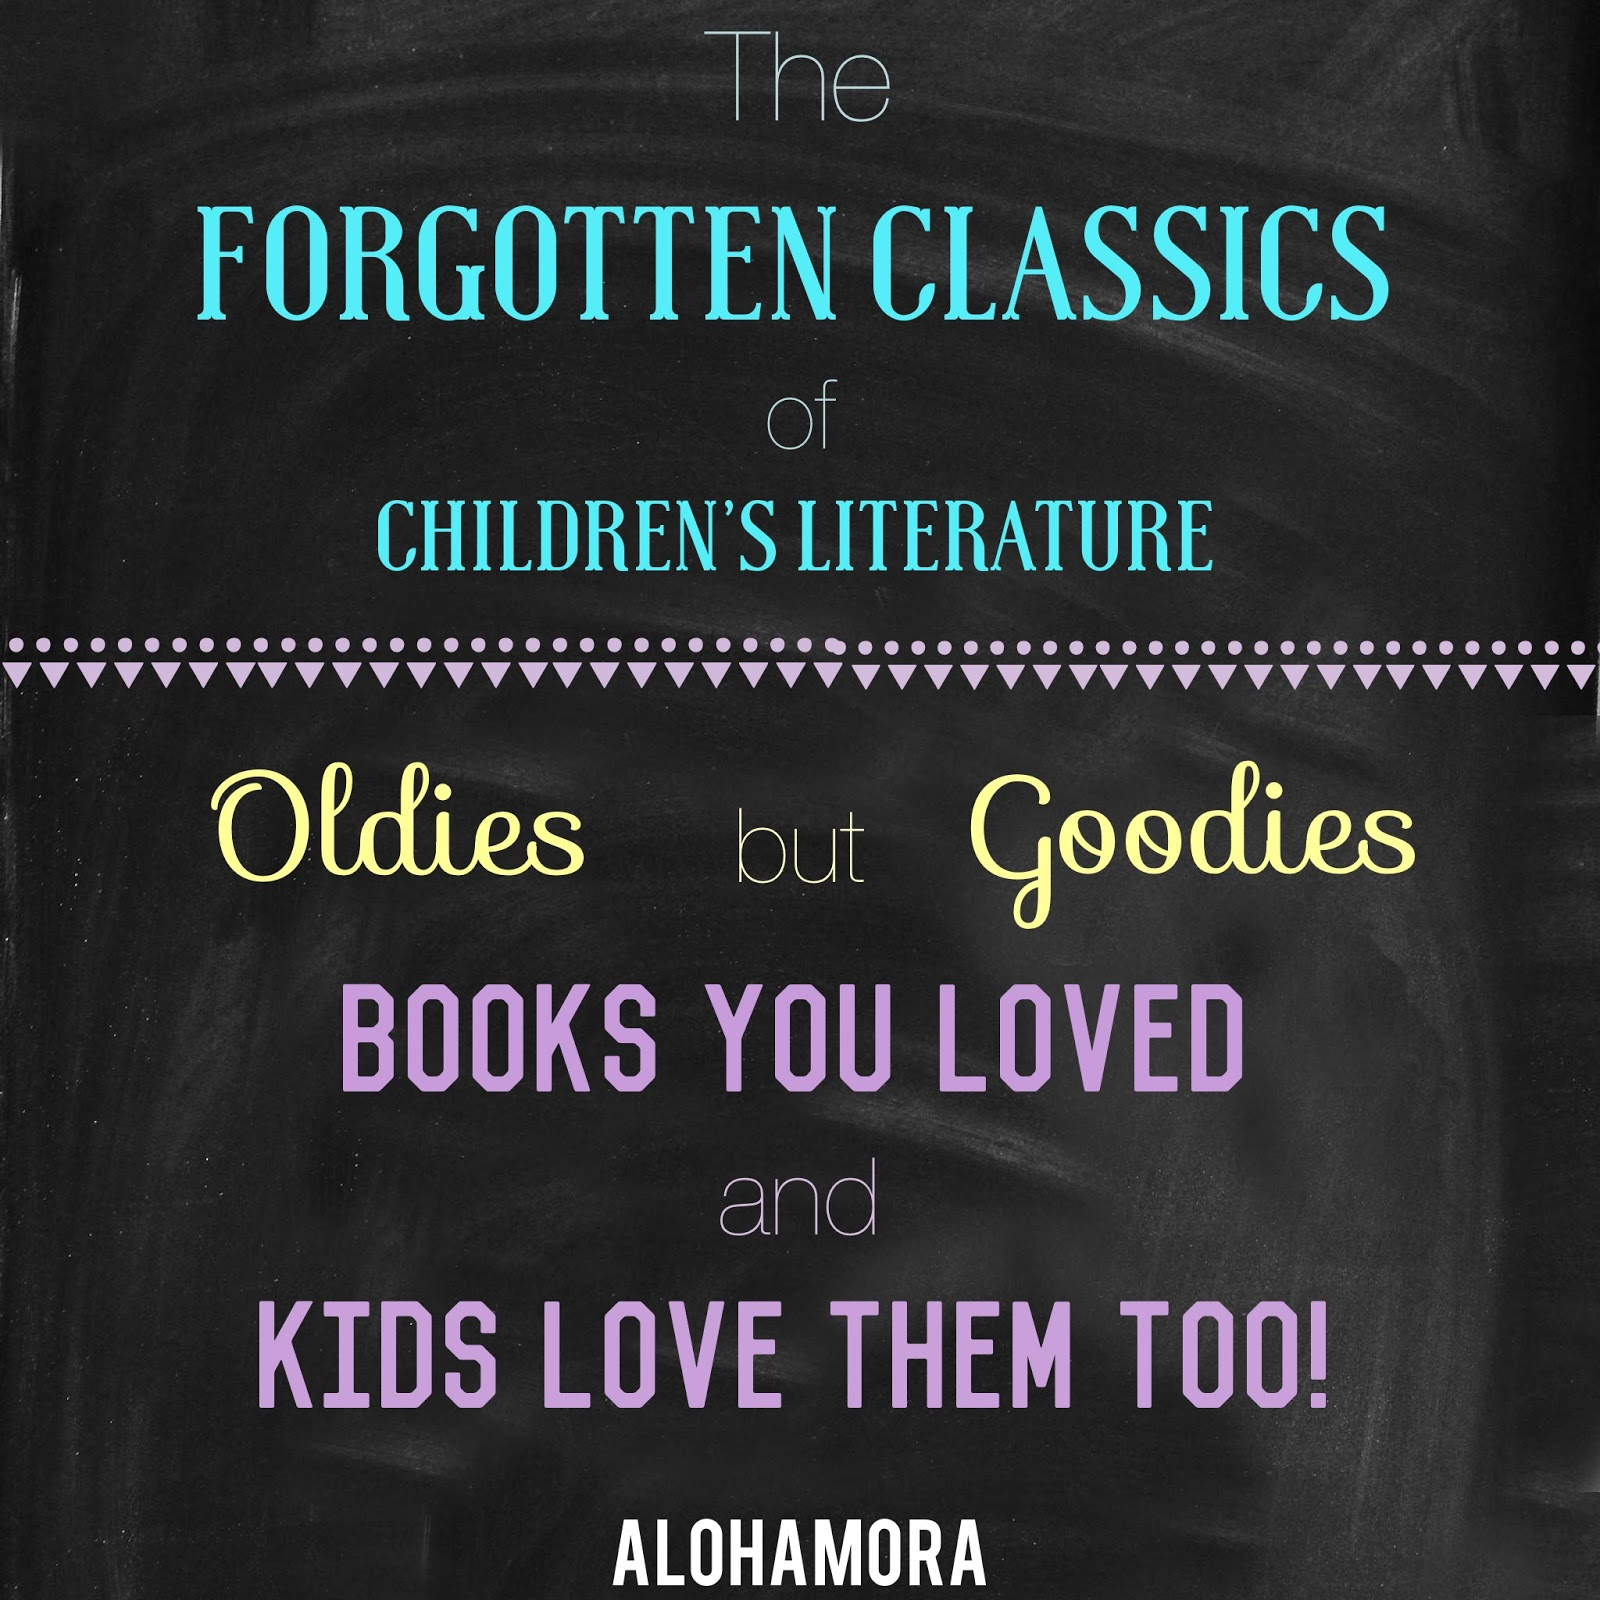 The Forgotten Classics of Children's LIterature aka those fabulous books that have been loved for years and years that your kids will love too.  Clean reads, and great read alouds.  Perfect for Elementary School kids (1st, 2nd, 3rd, 4th, 5th, and 6th grade) both boys and girls.  Fantasy, adventure, realistic, humor, and all around great books.  Many Newbery Winners.  Alohamora Open a Book http://alohamoraopenabook.blogspot.com/